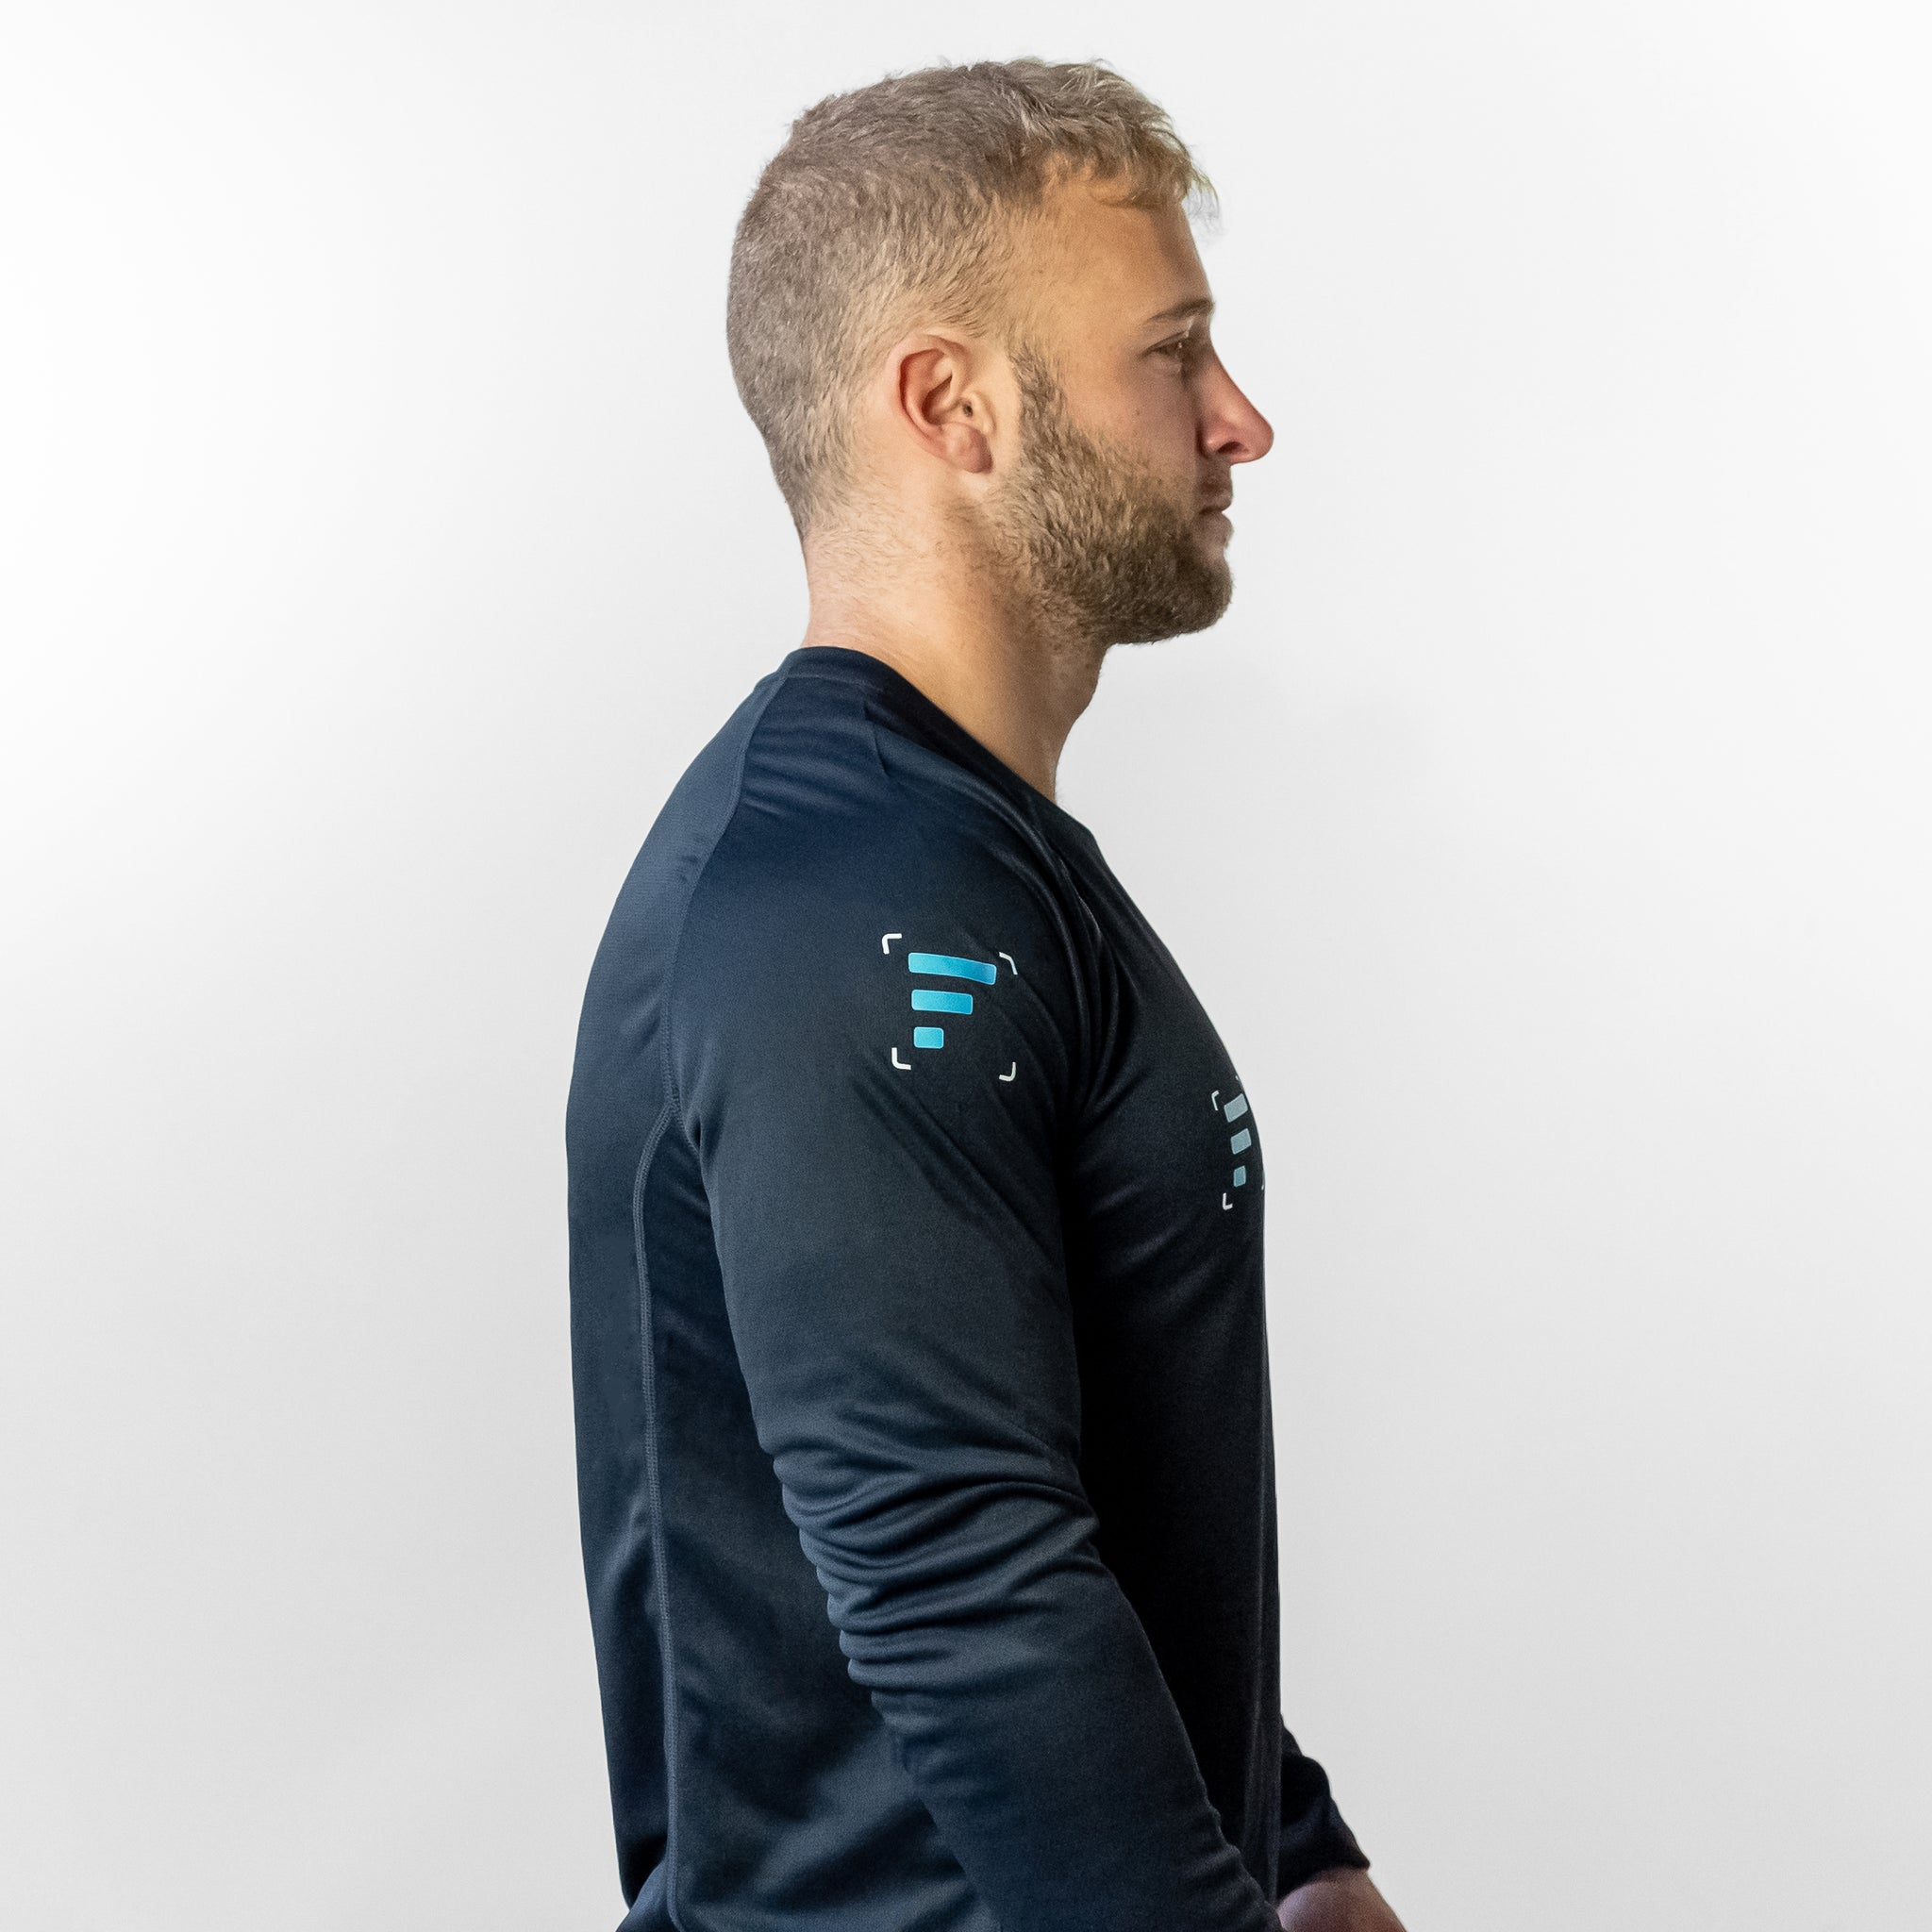 Side angle of man wearing FlexIt Dry Fit black long sleeve shirt.